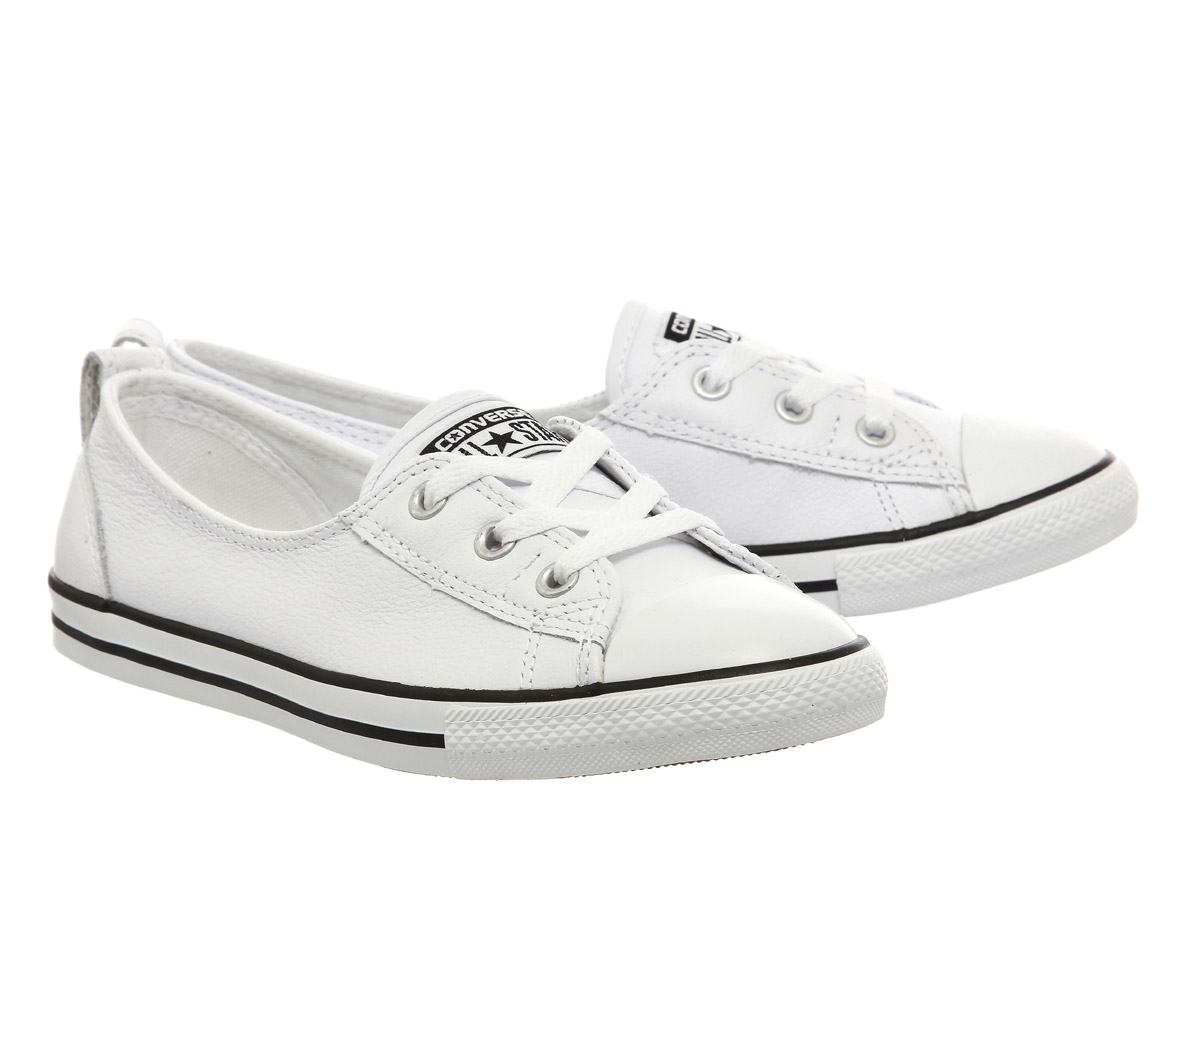 Converse Ctas Ballet Lace Leather in White - Lyst